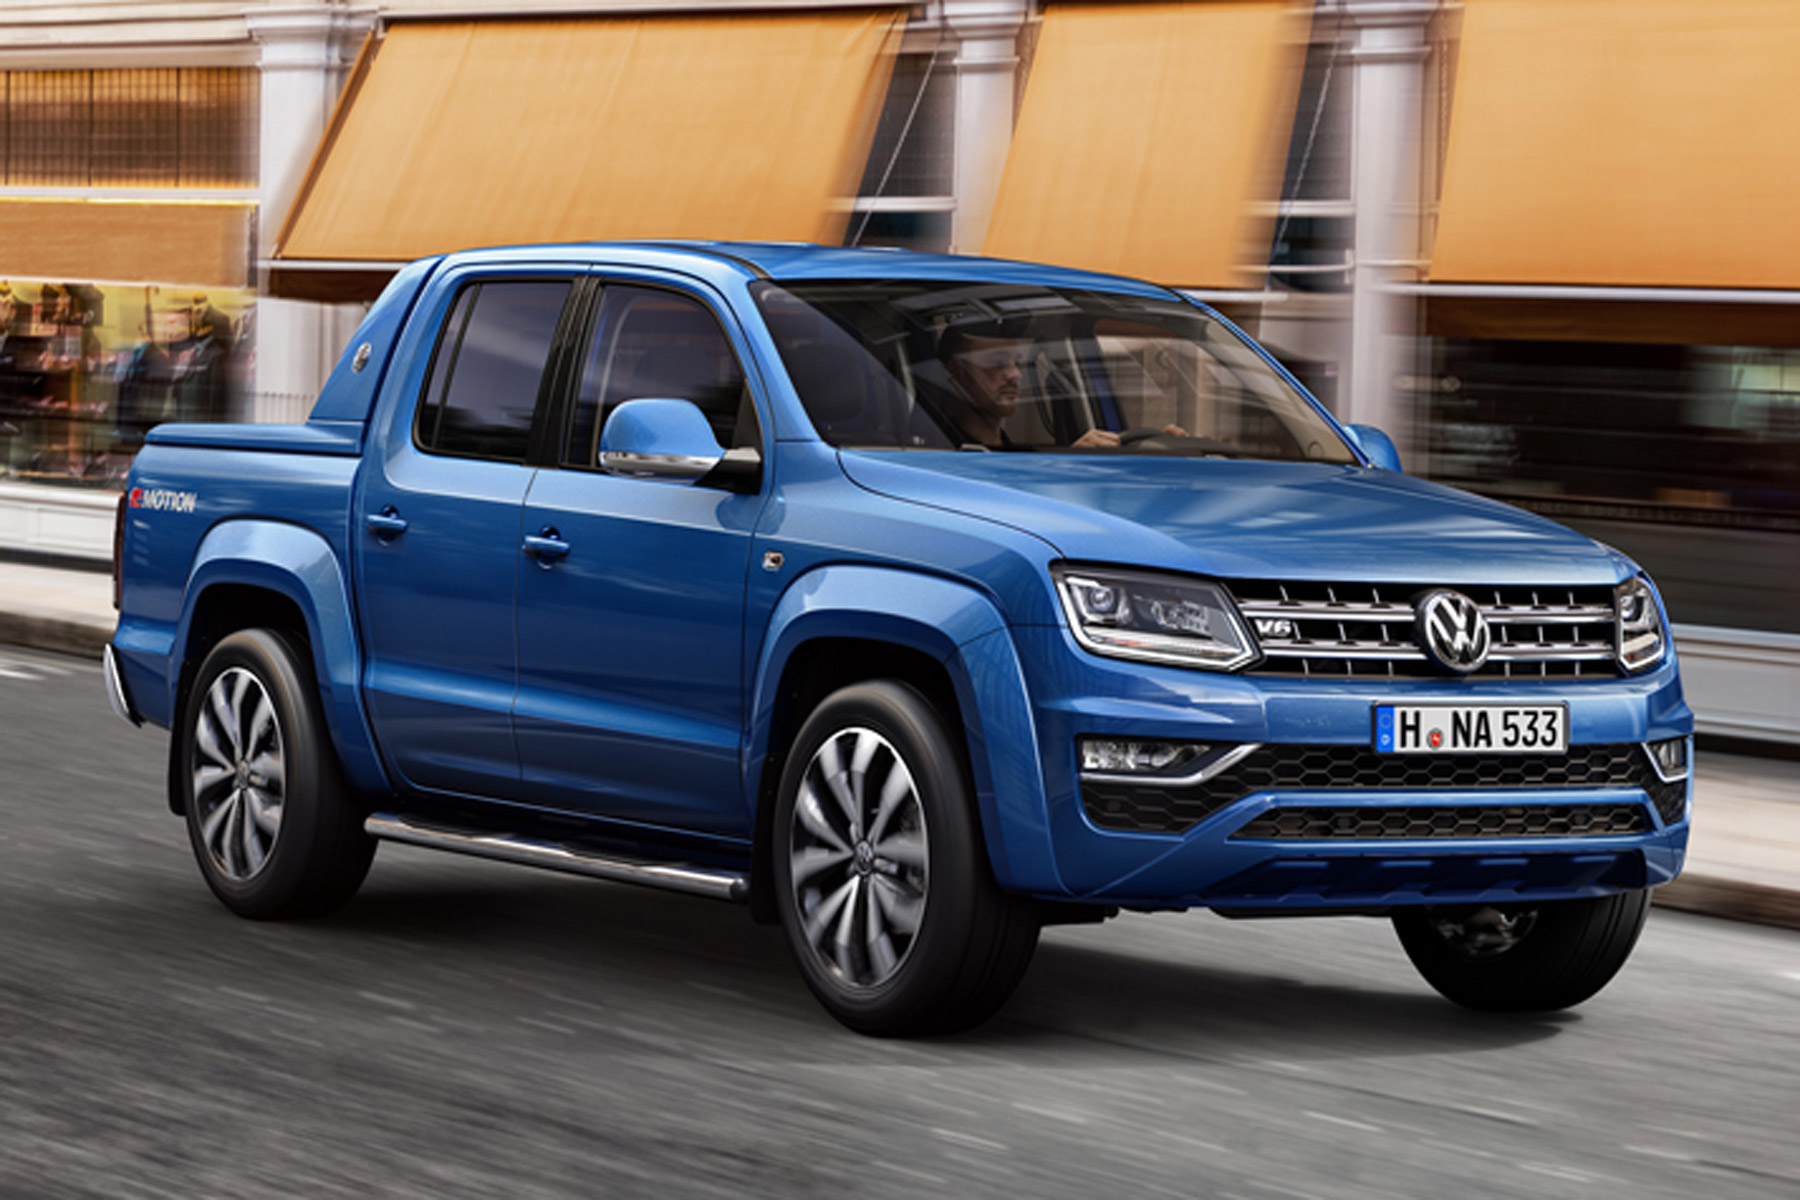 vw s new amarok pick up will hit 62mph in 7 9 seconds. Black Bedroom Furniture Sets. Home Design Ideas